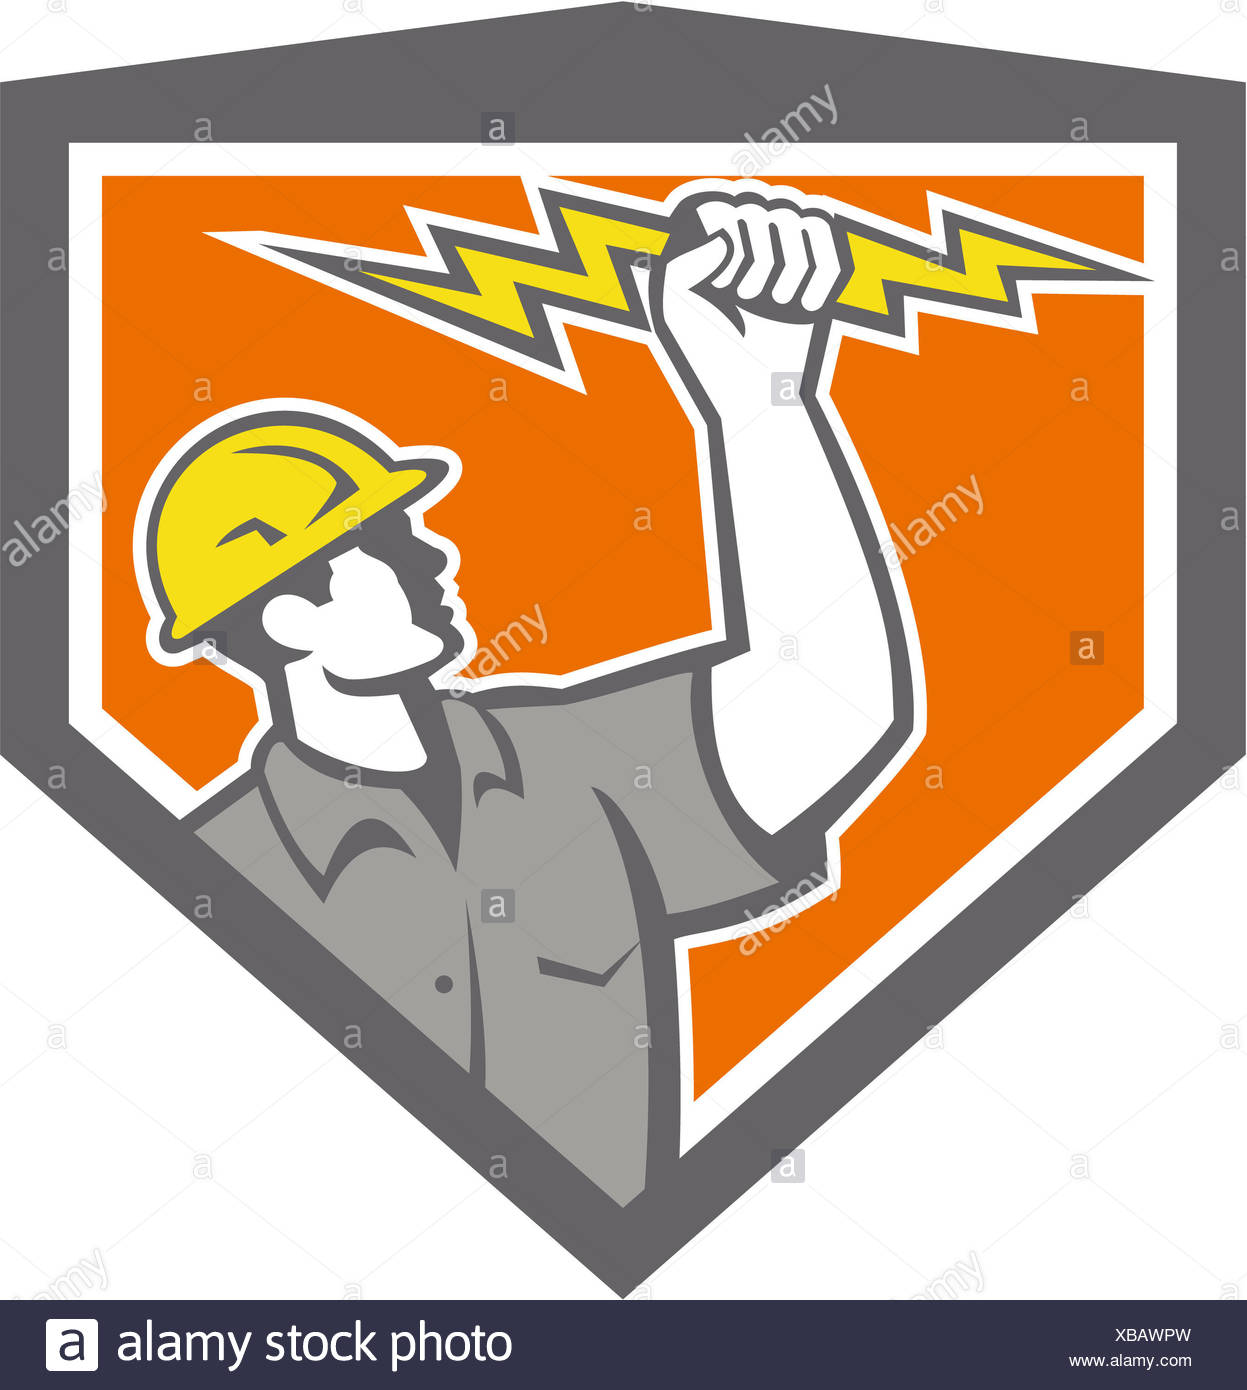 Illustration of an electrician construction worker wield holding a lightning bolt set inside shield crest done in retro style on isolated white background. - Stock Image